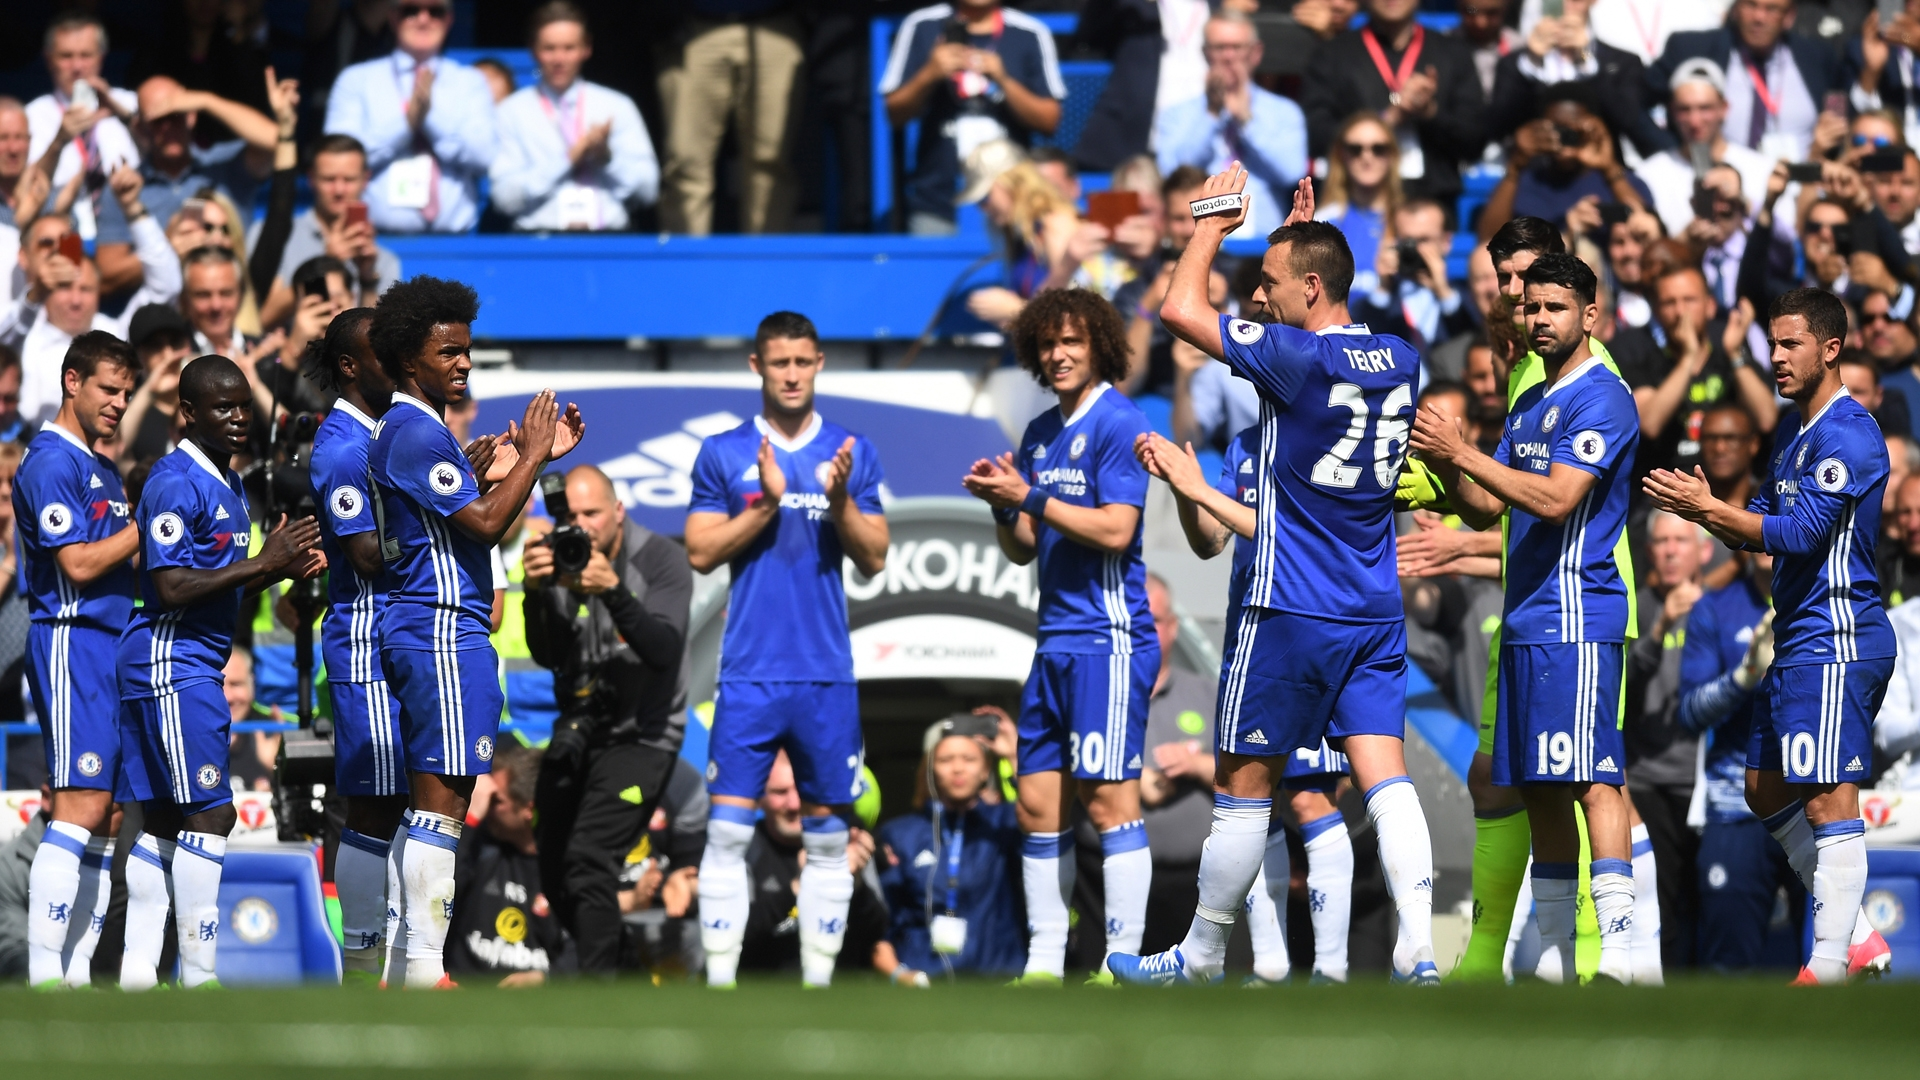 John Terry receives ovation upon leaving the field for the final time as a Chelsea player